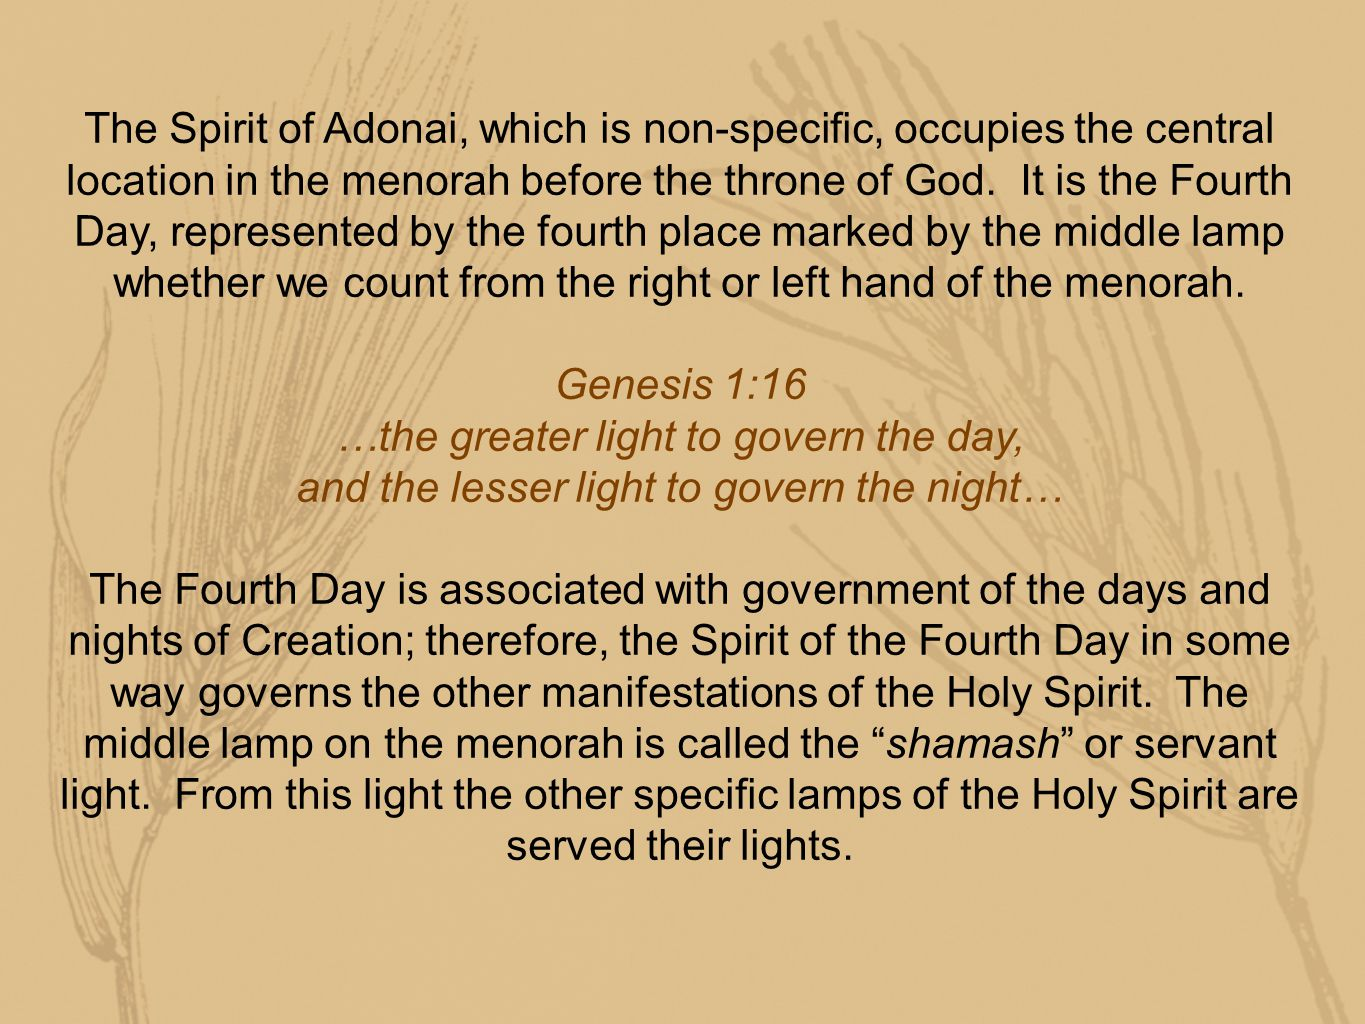 The Spirit of Adonai, which is non-specific, occupies the central location in the menorah before the throne of God.